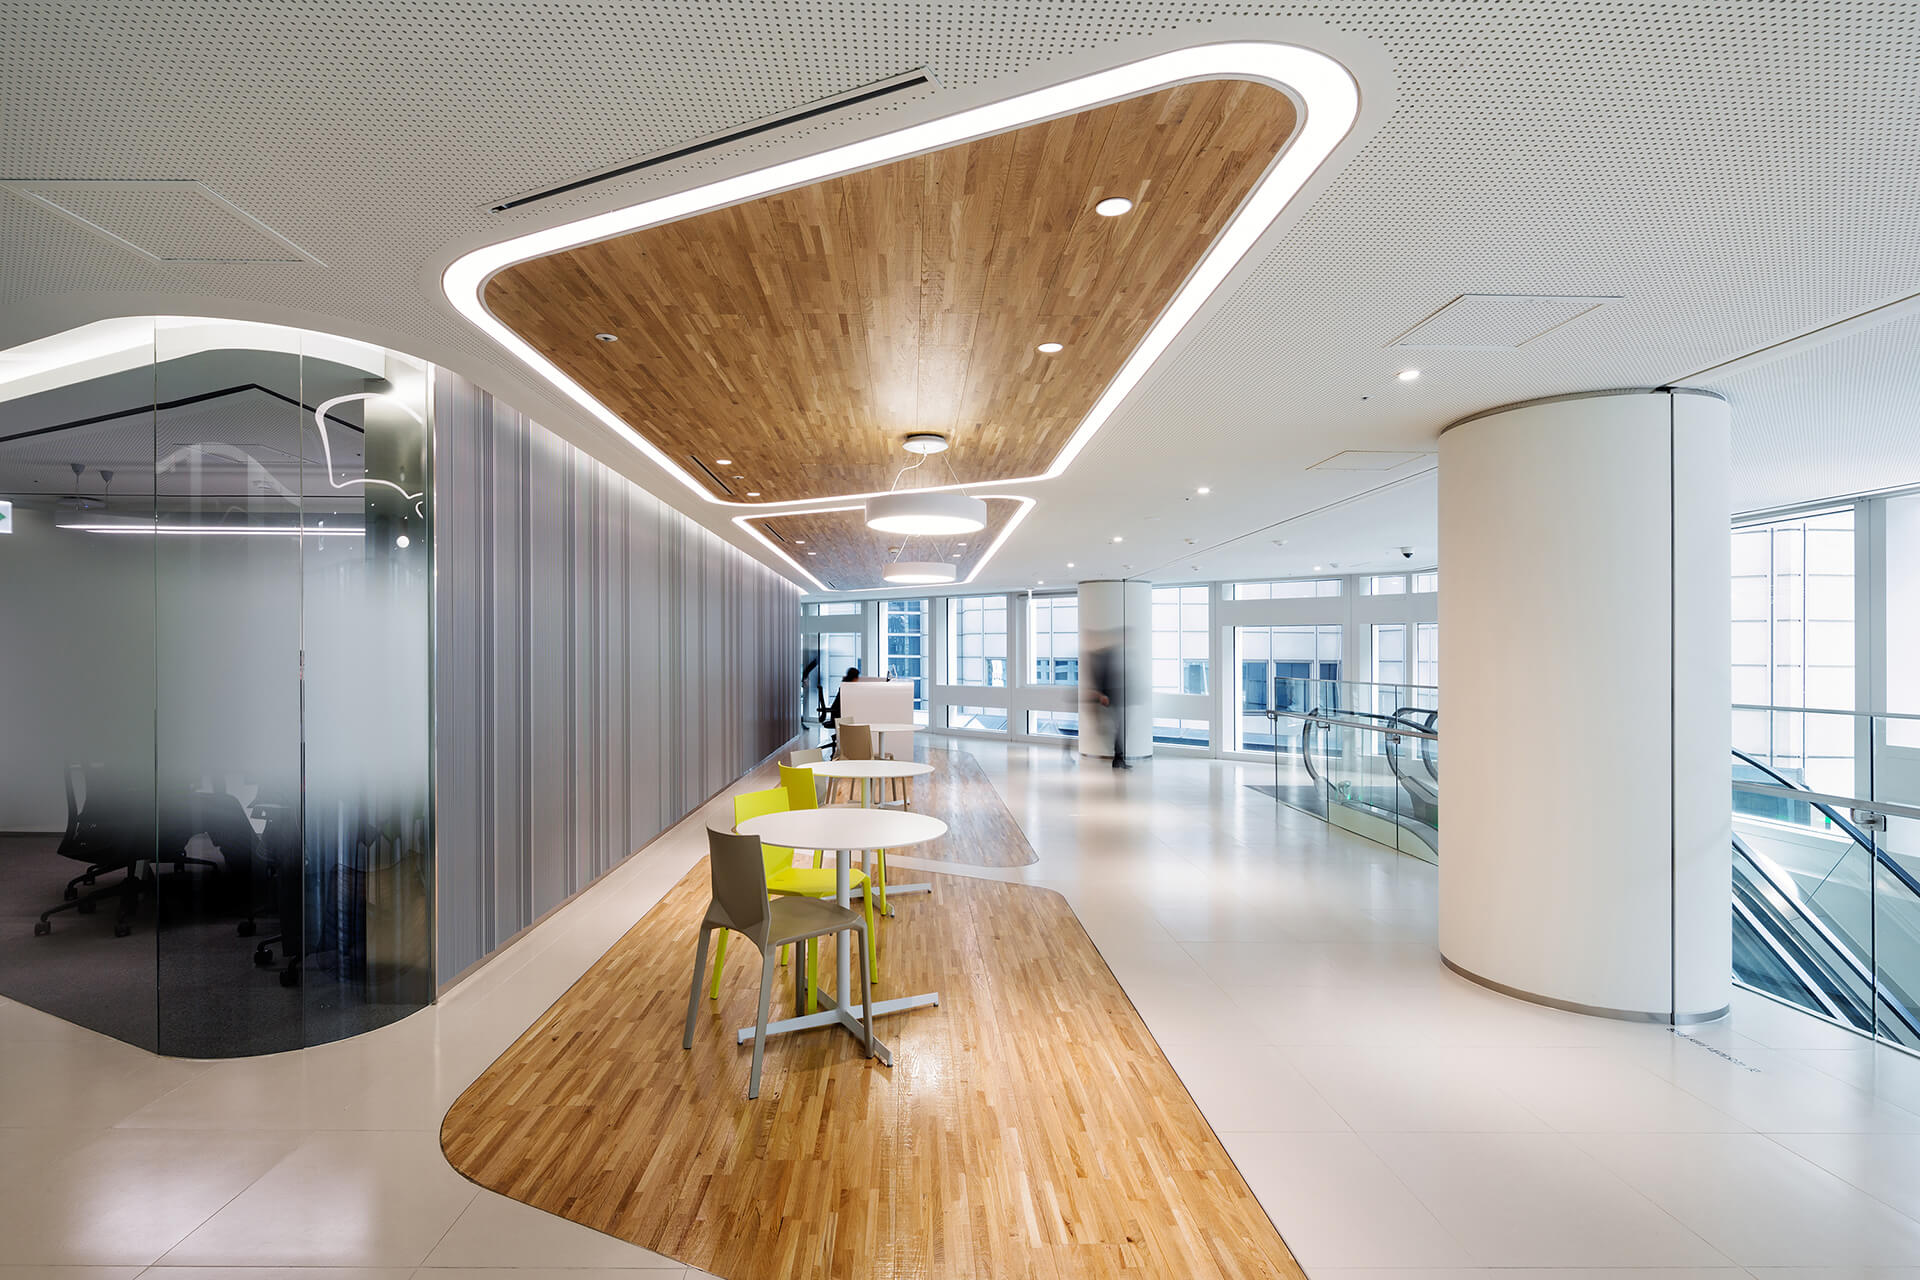 The interiors feature rounded, soft edges and well-lit spaces | Hanwha Headquarters Remodelling by UNStudio | STIRworld